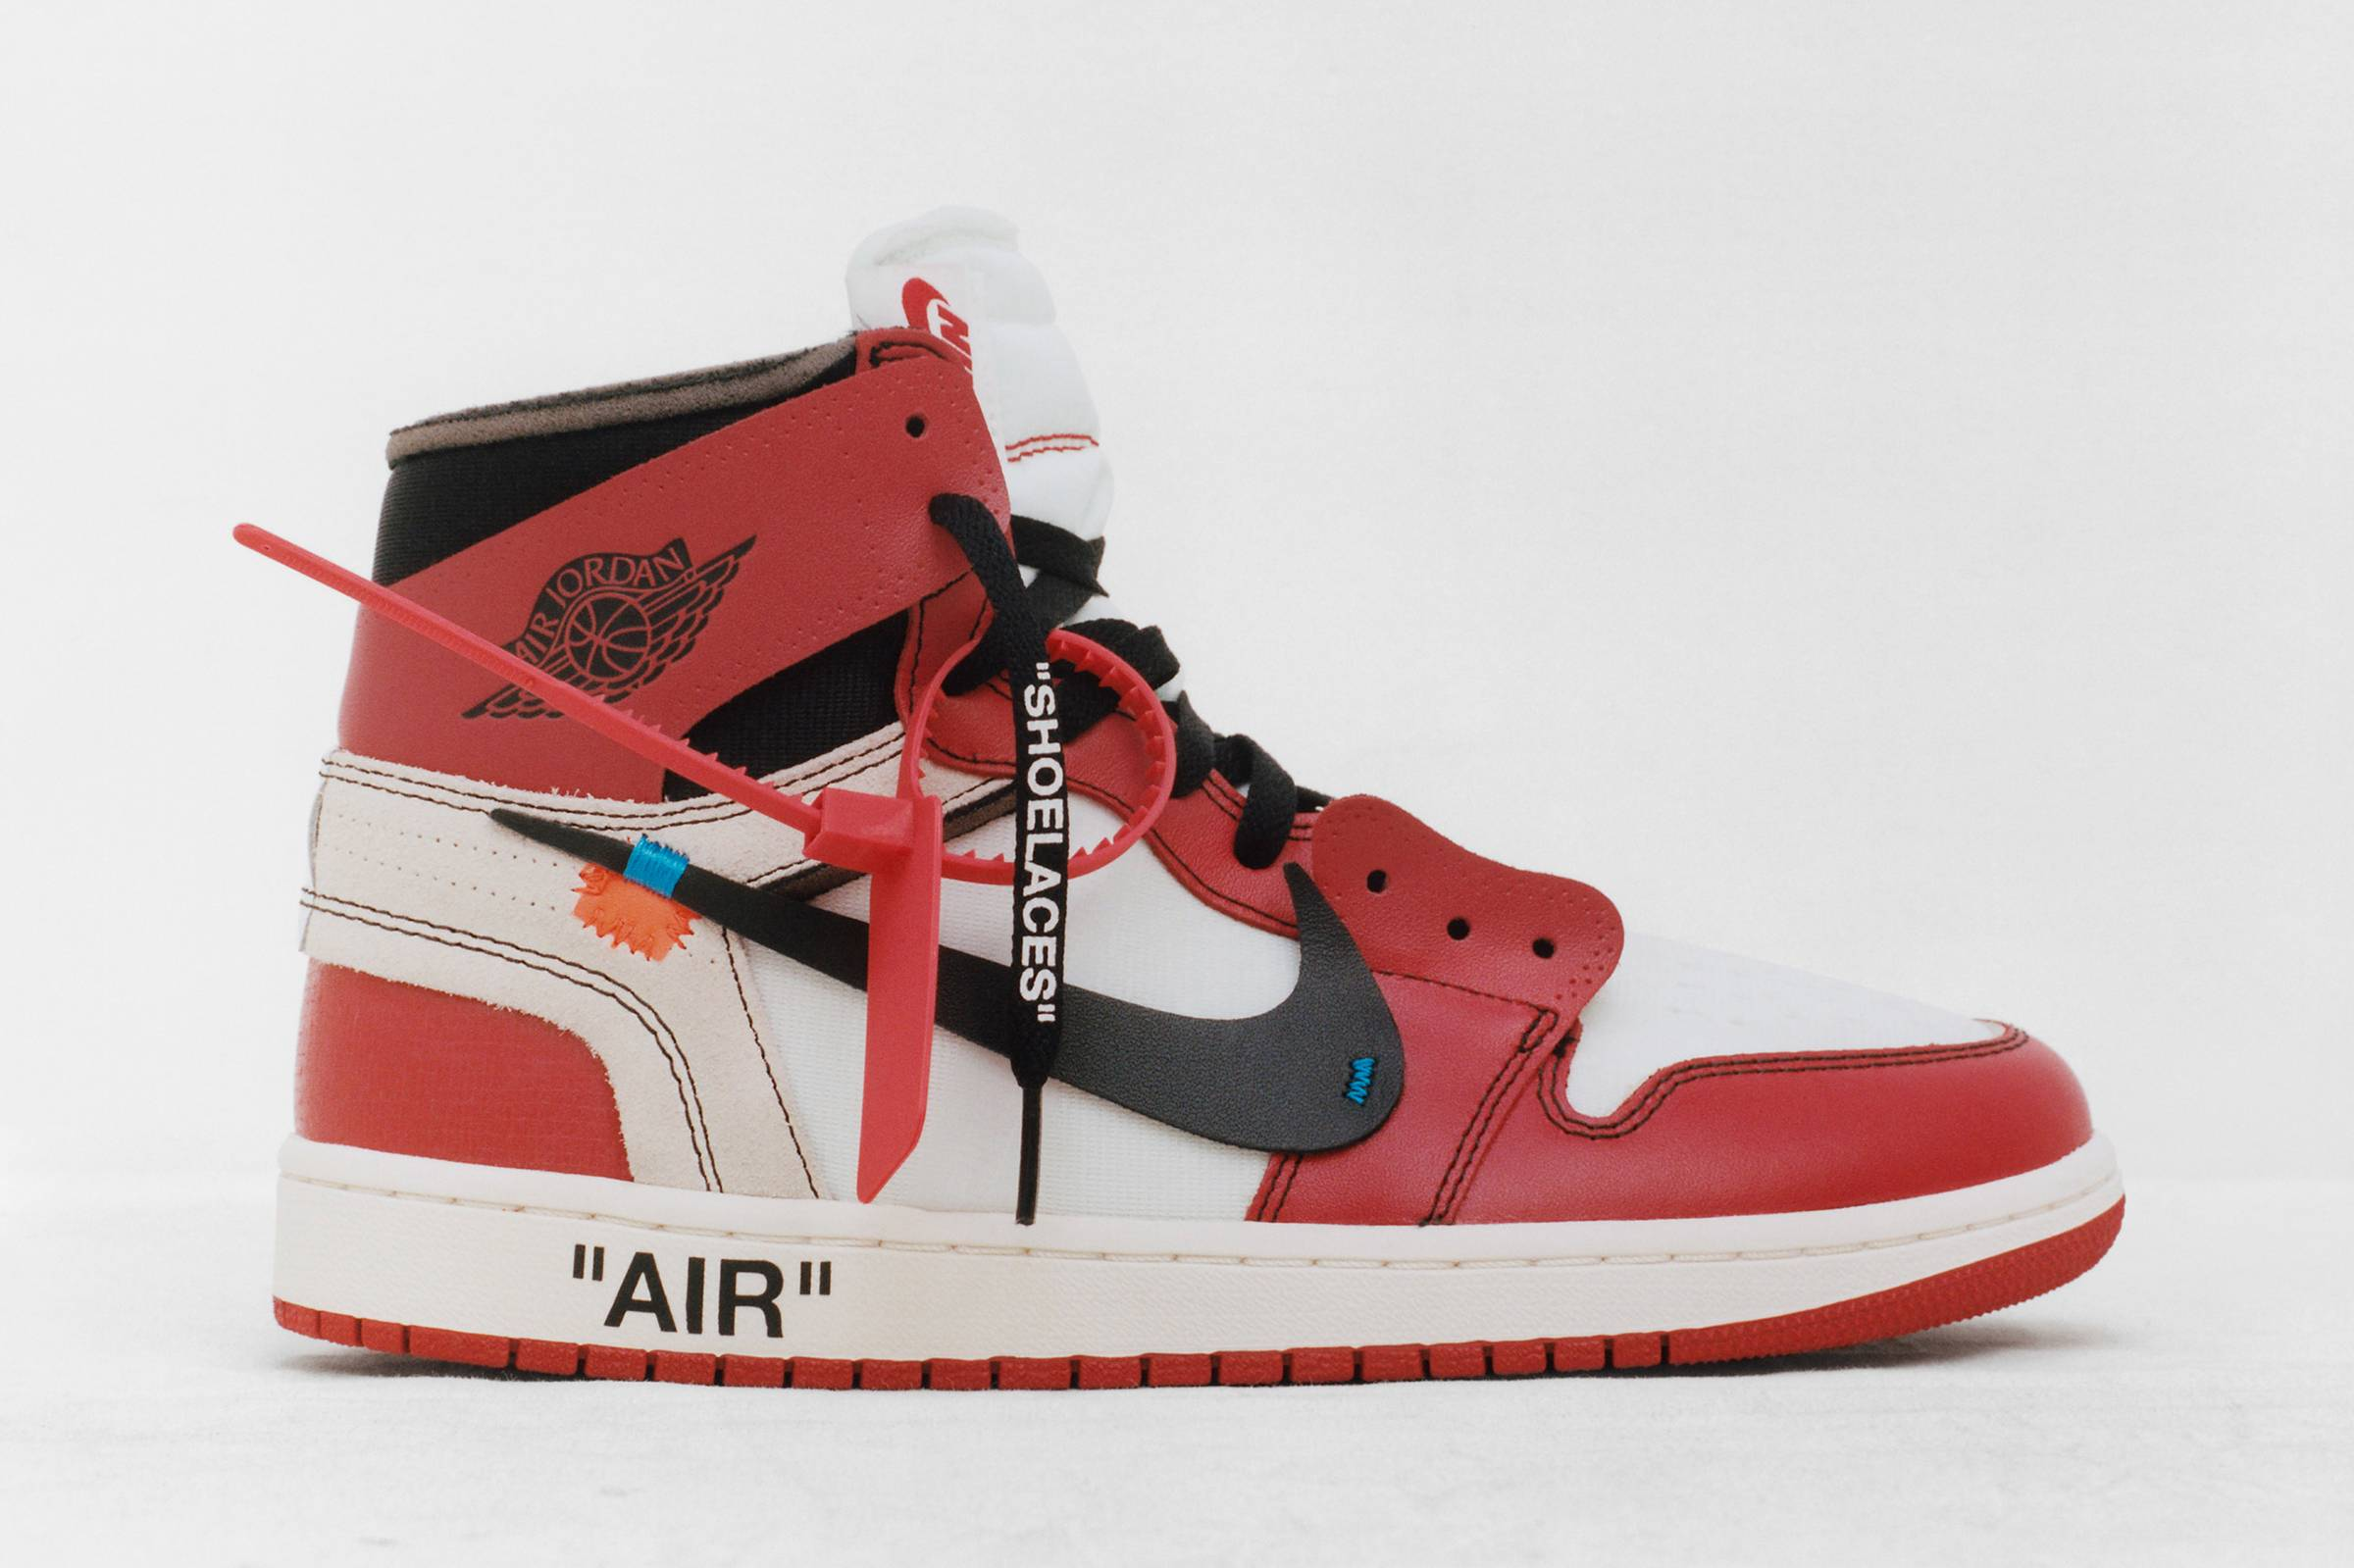 quality design 44004 3adab Off-White x Nike Jordan 1